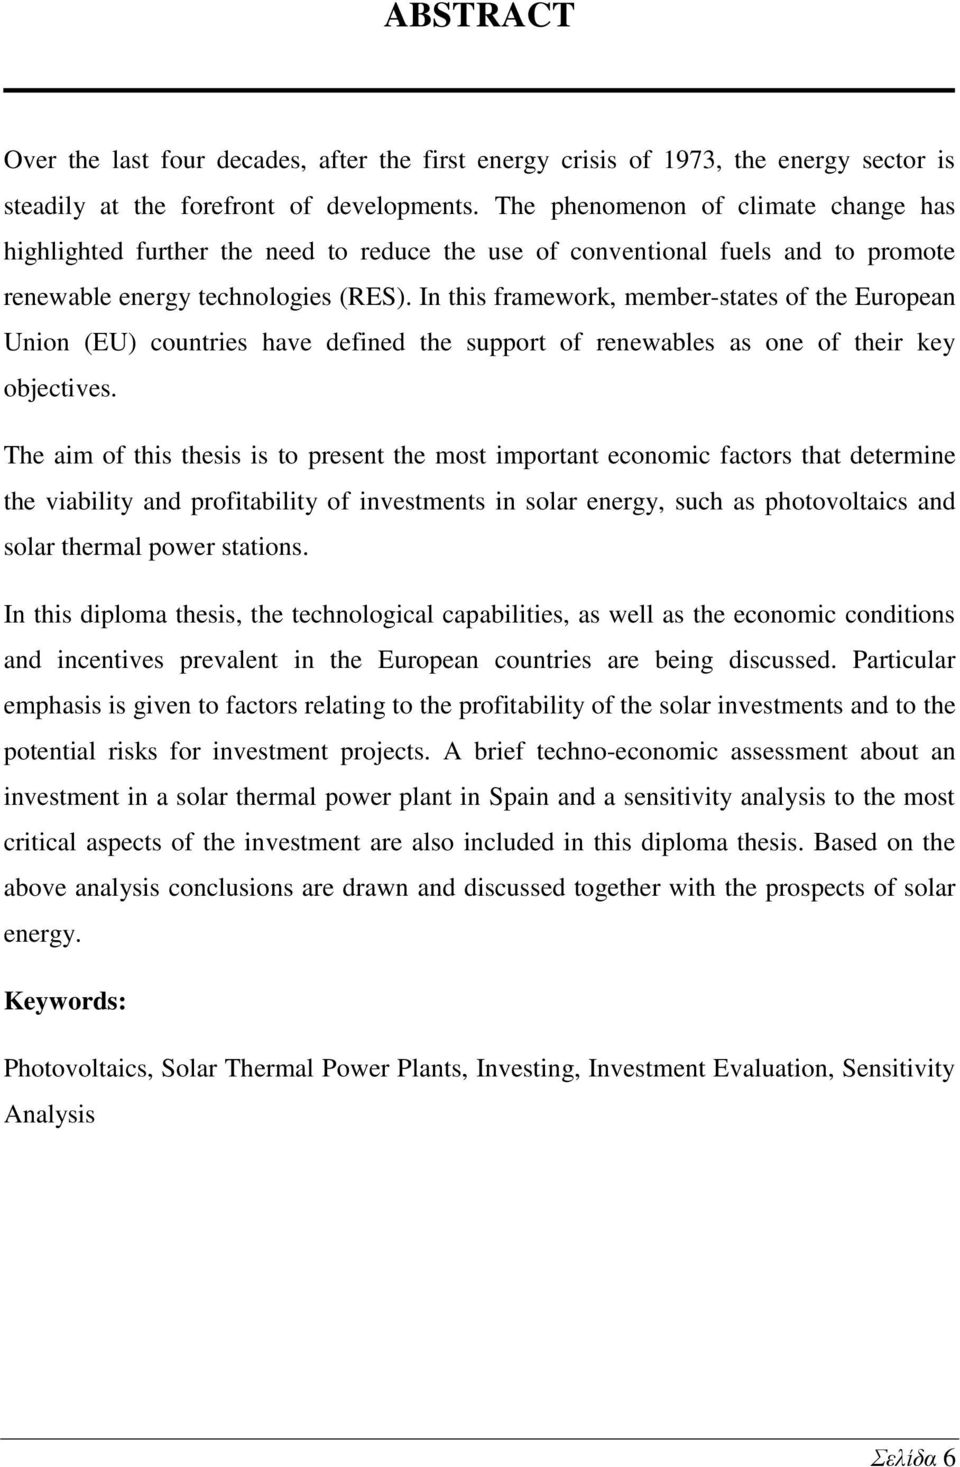 In this framework, member-states of the European Union (EU) countries have defined the support of renewables as one of their key objectives.